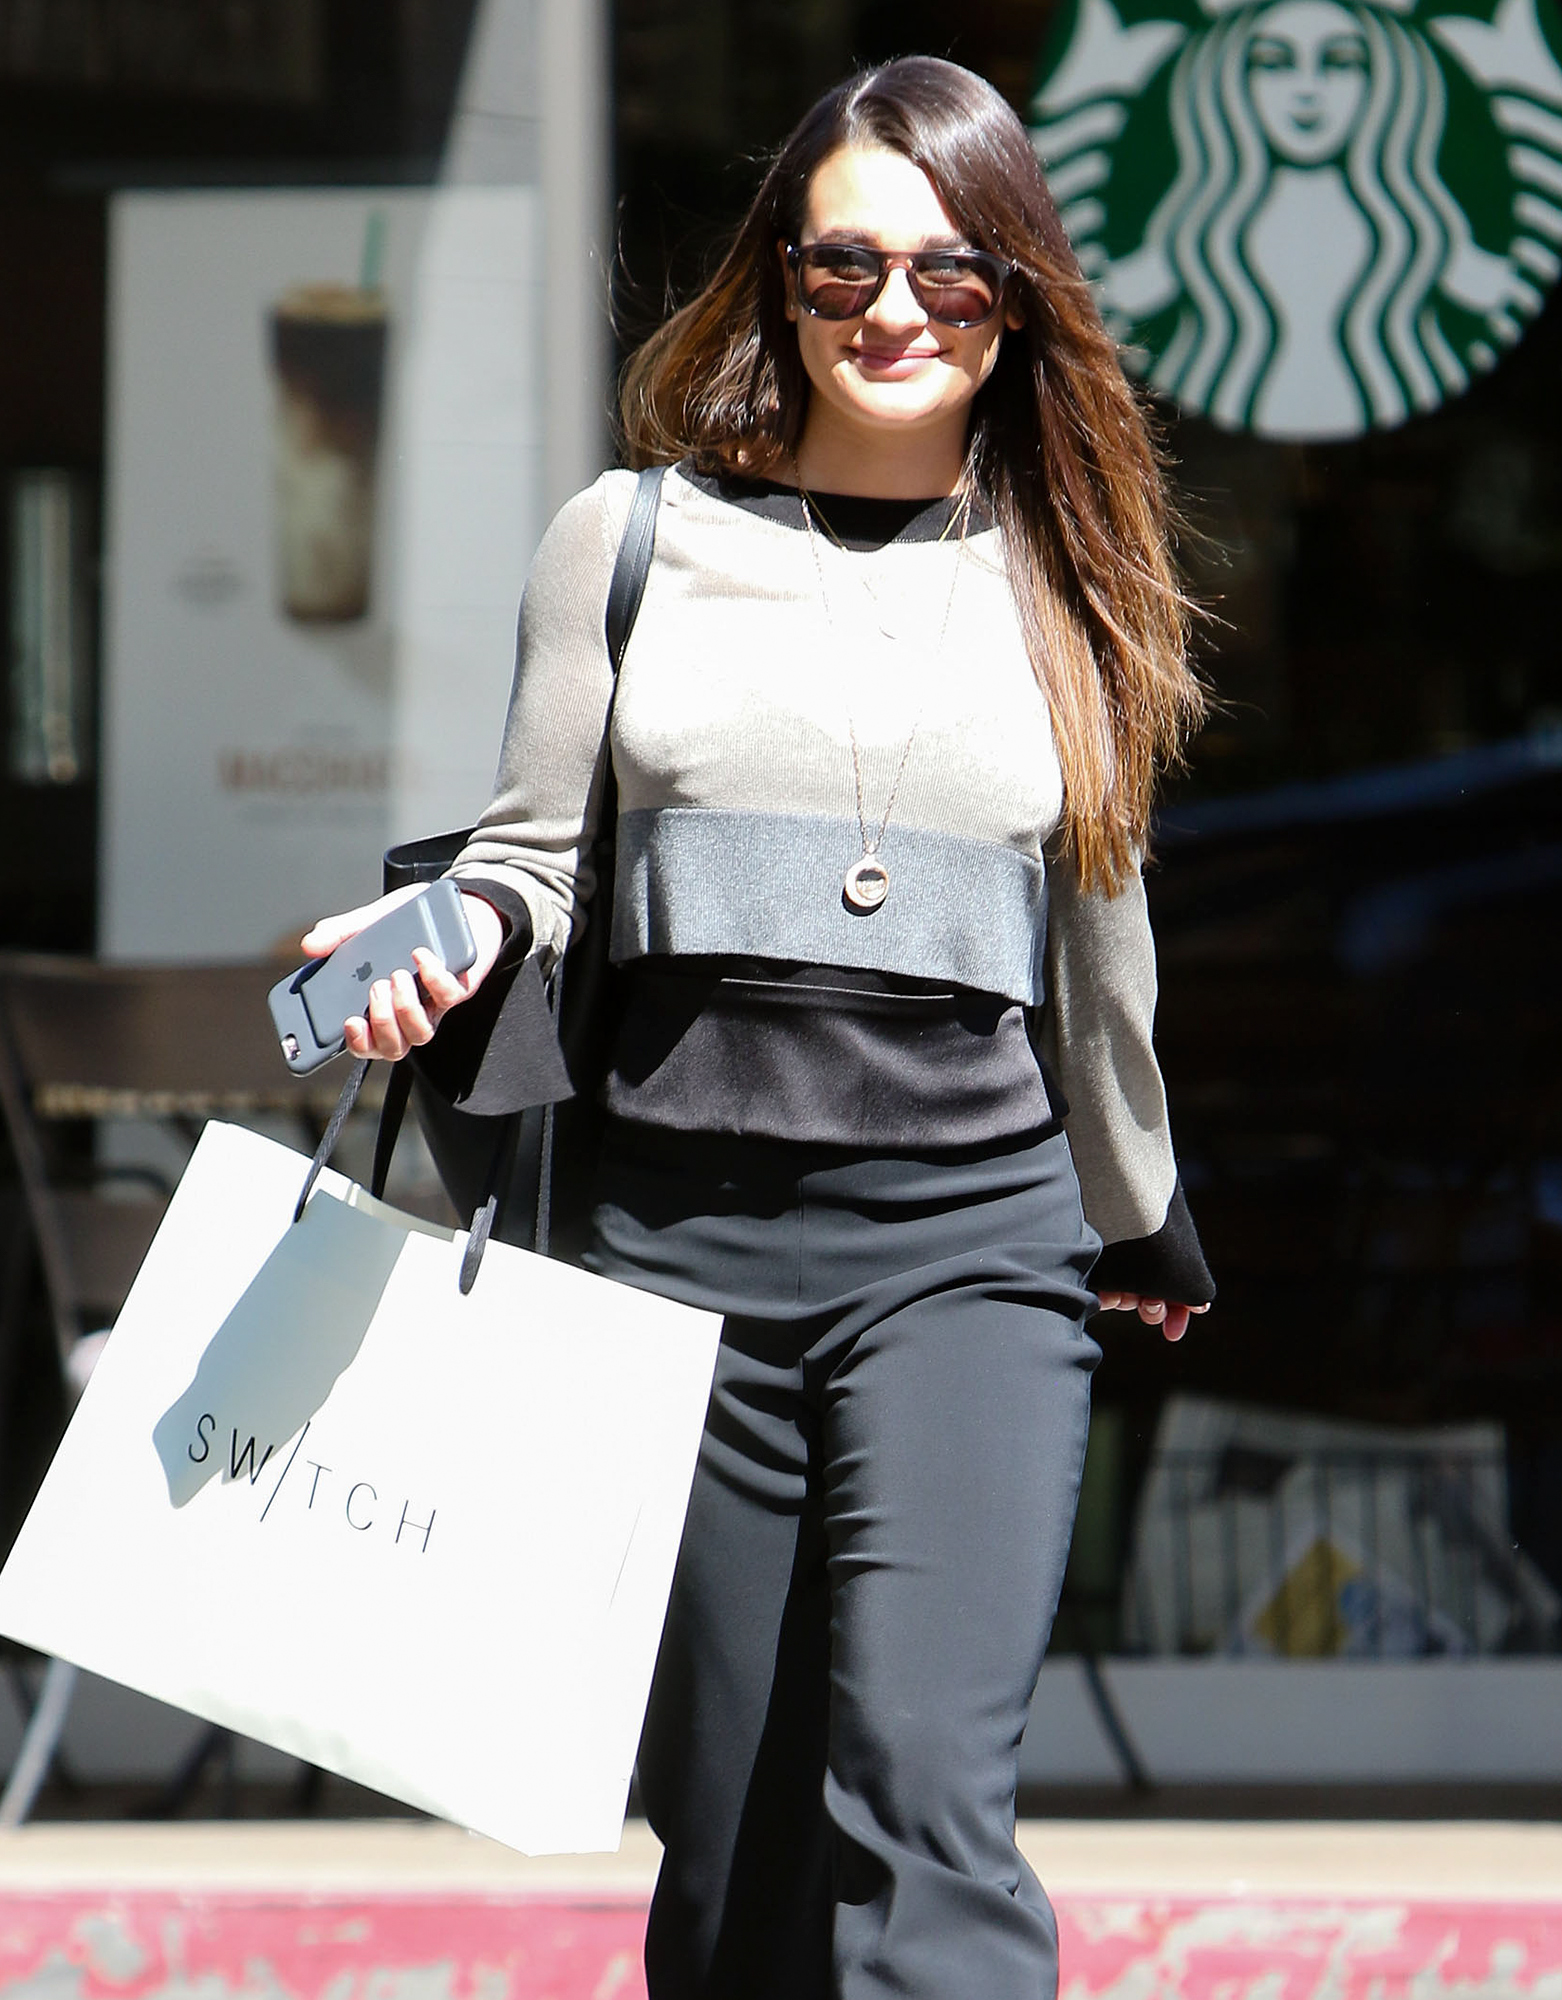 Exclusive... Lea Michele Out Shopping In Bel-Air